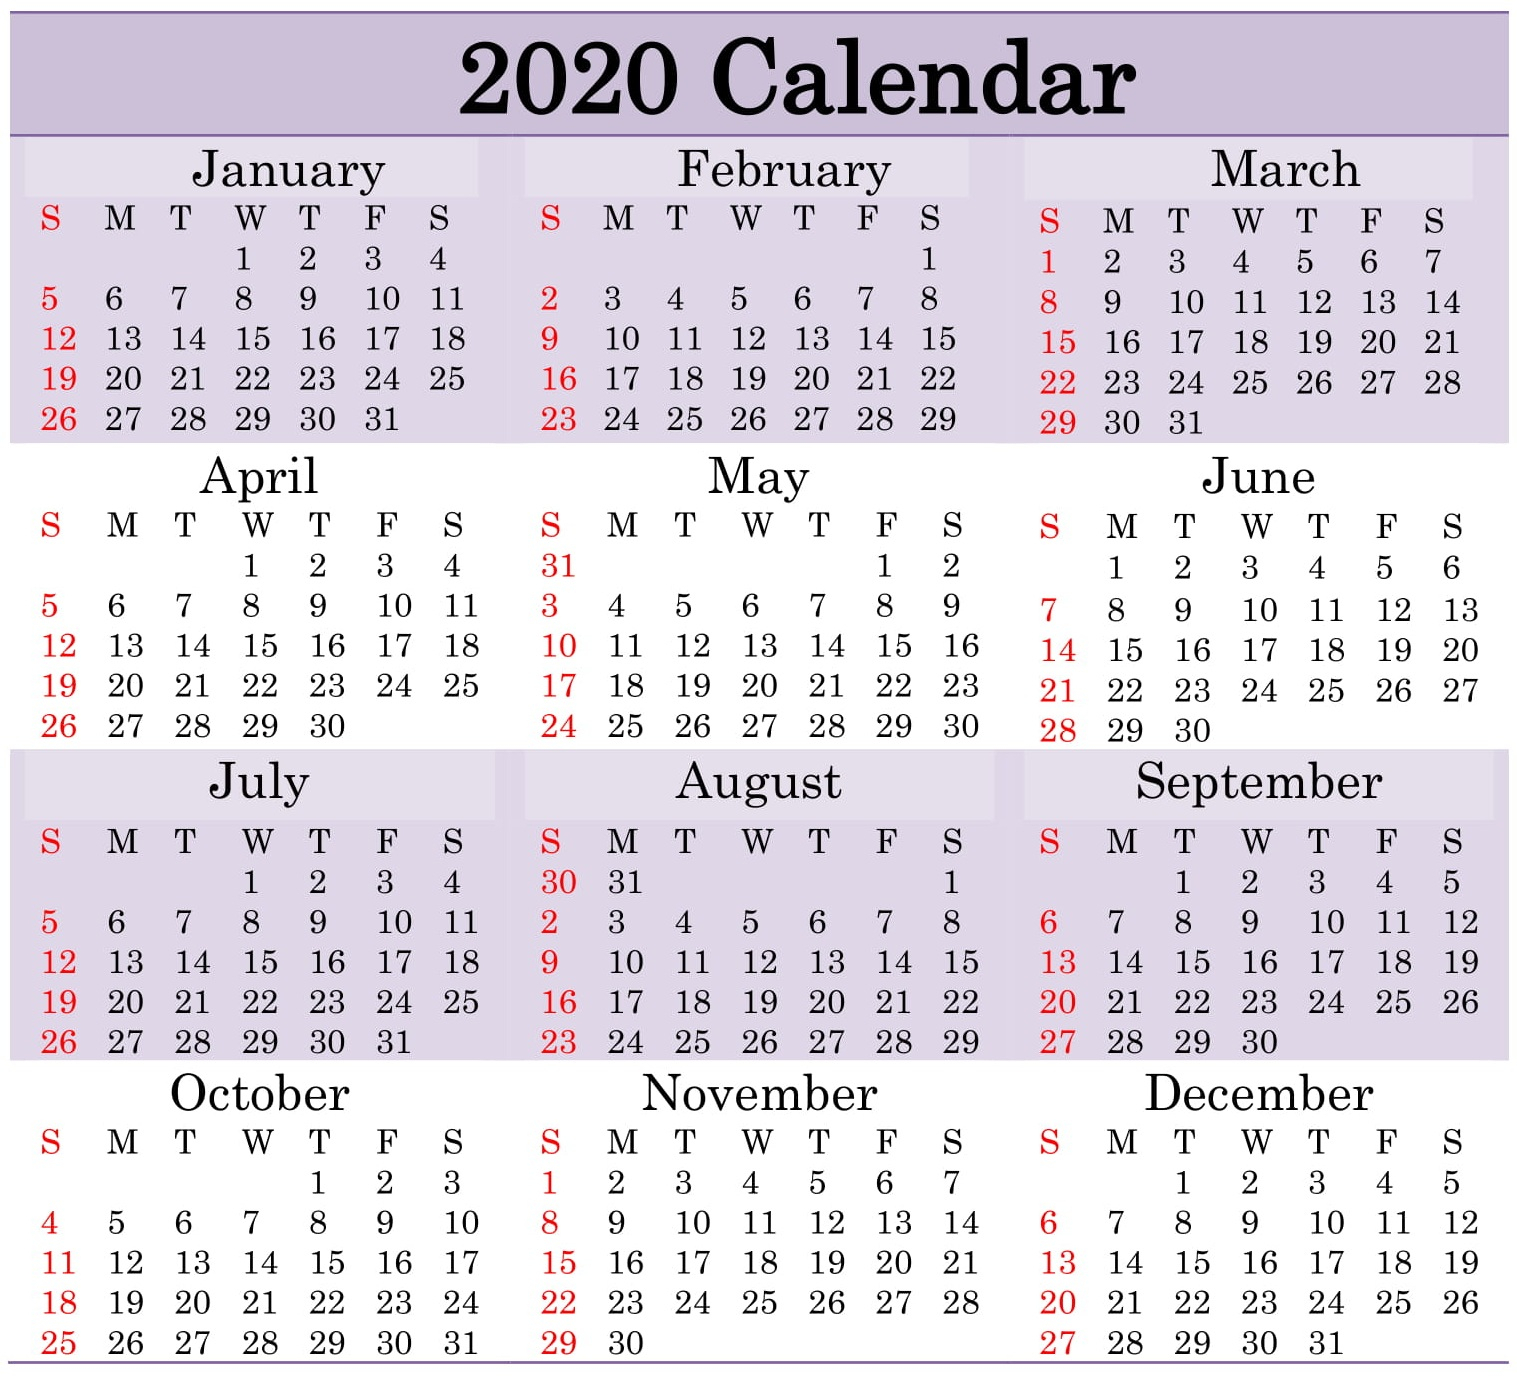 Printable 2020 Calendar Word Document - Latest Printable